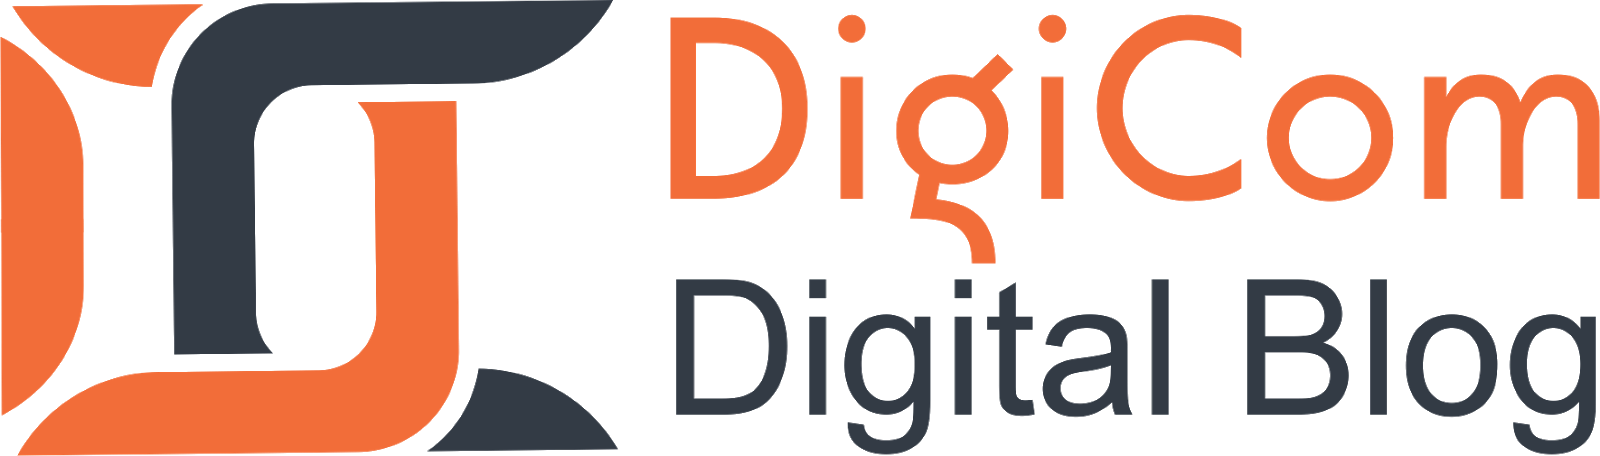 DigiCom Digital services